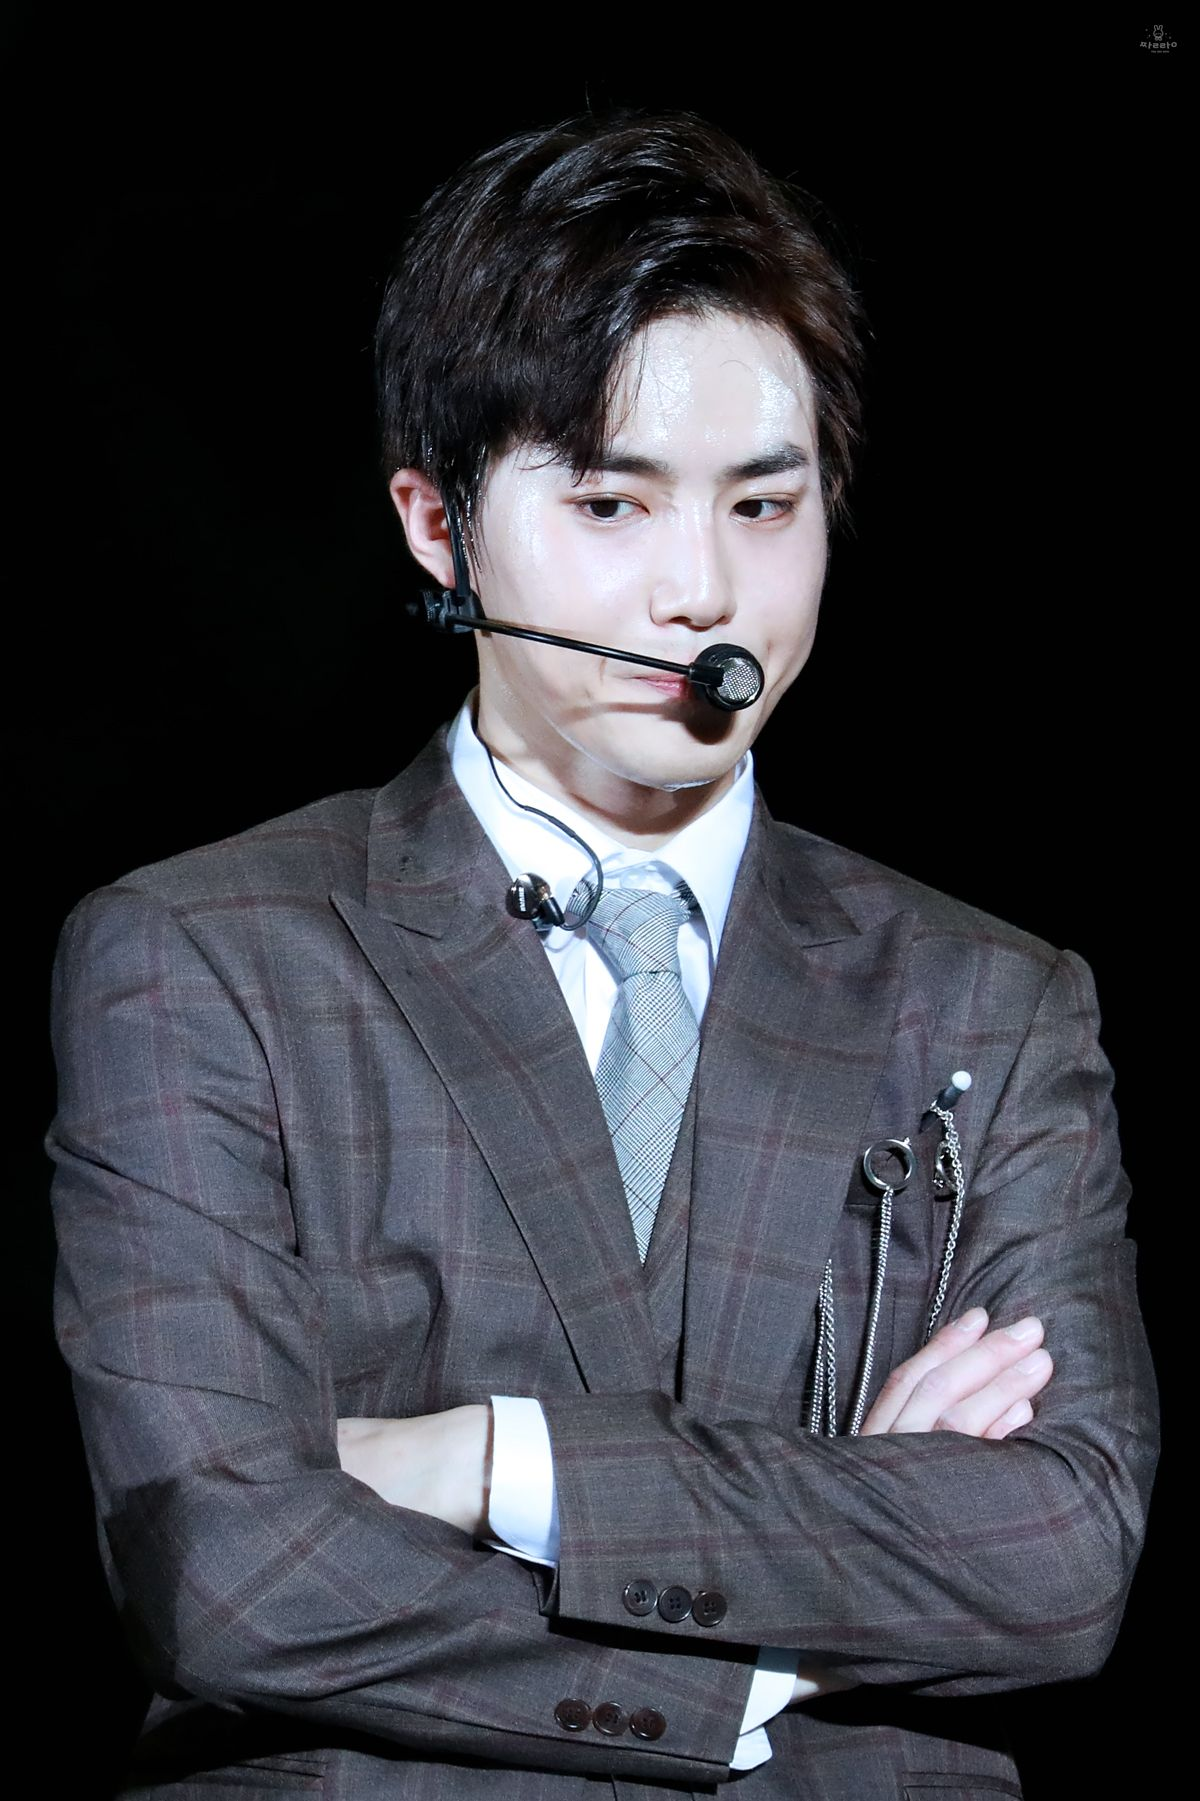 171124 EXO 4 The EℓyXiOn Day 1 SUHO. スホ